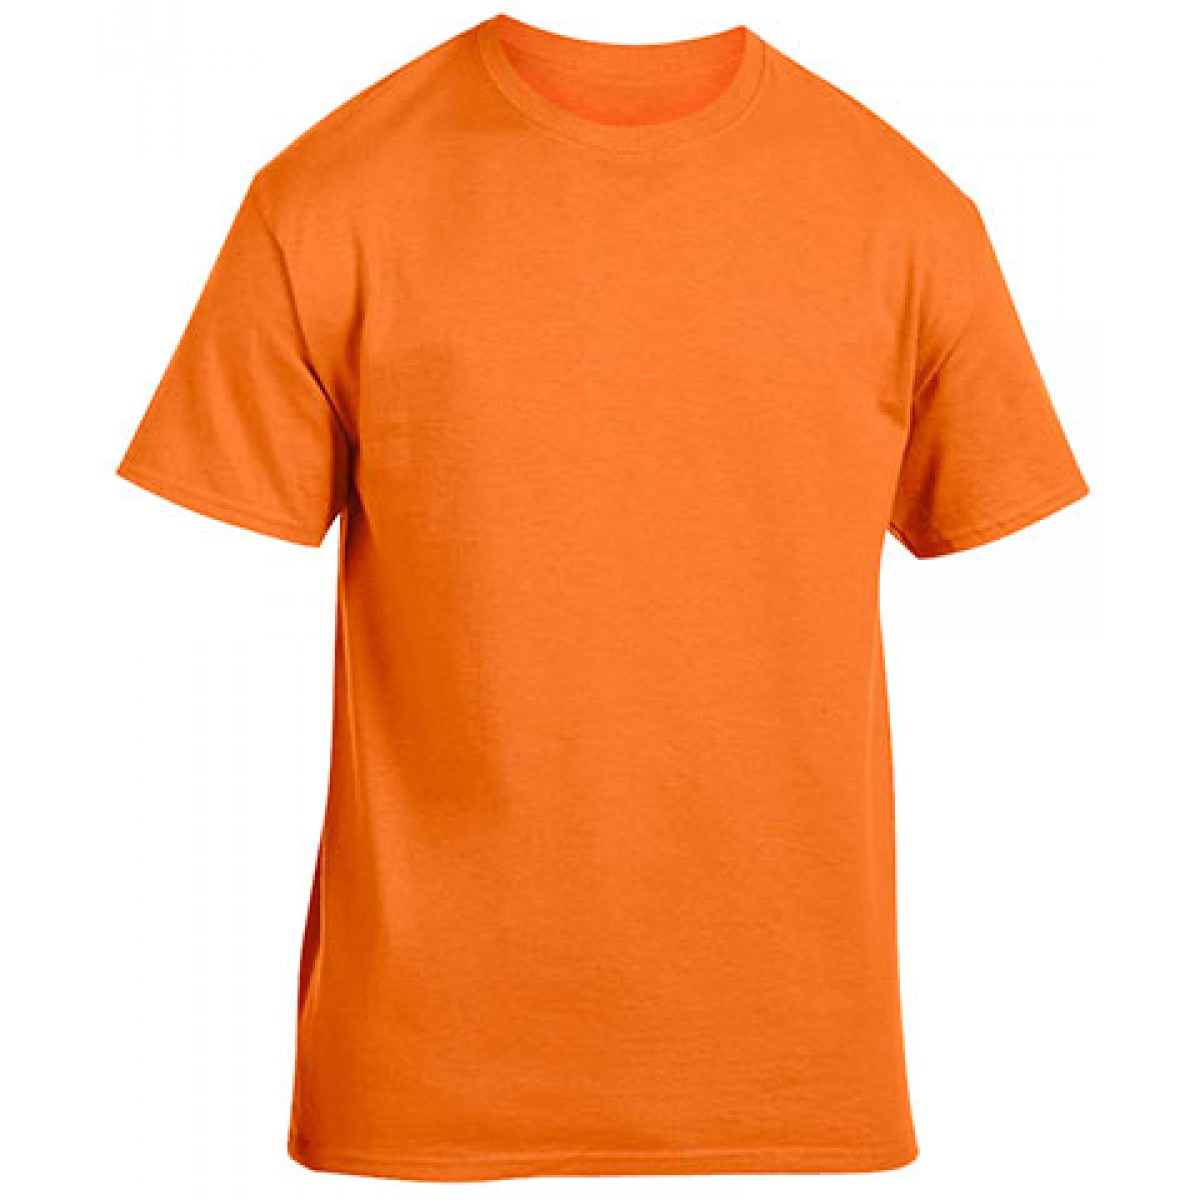 Cotton Short Sleeve T-Shirt-Safety Orange-YM